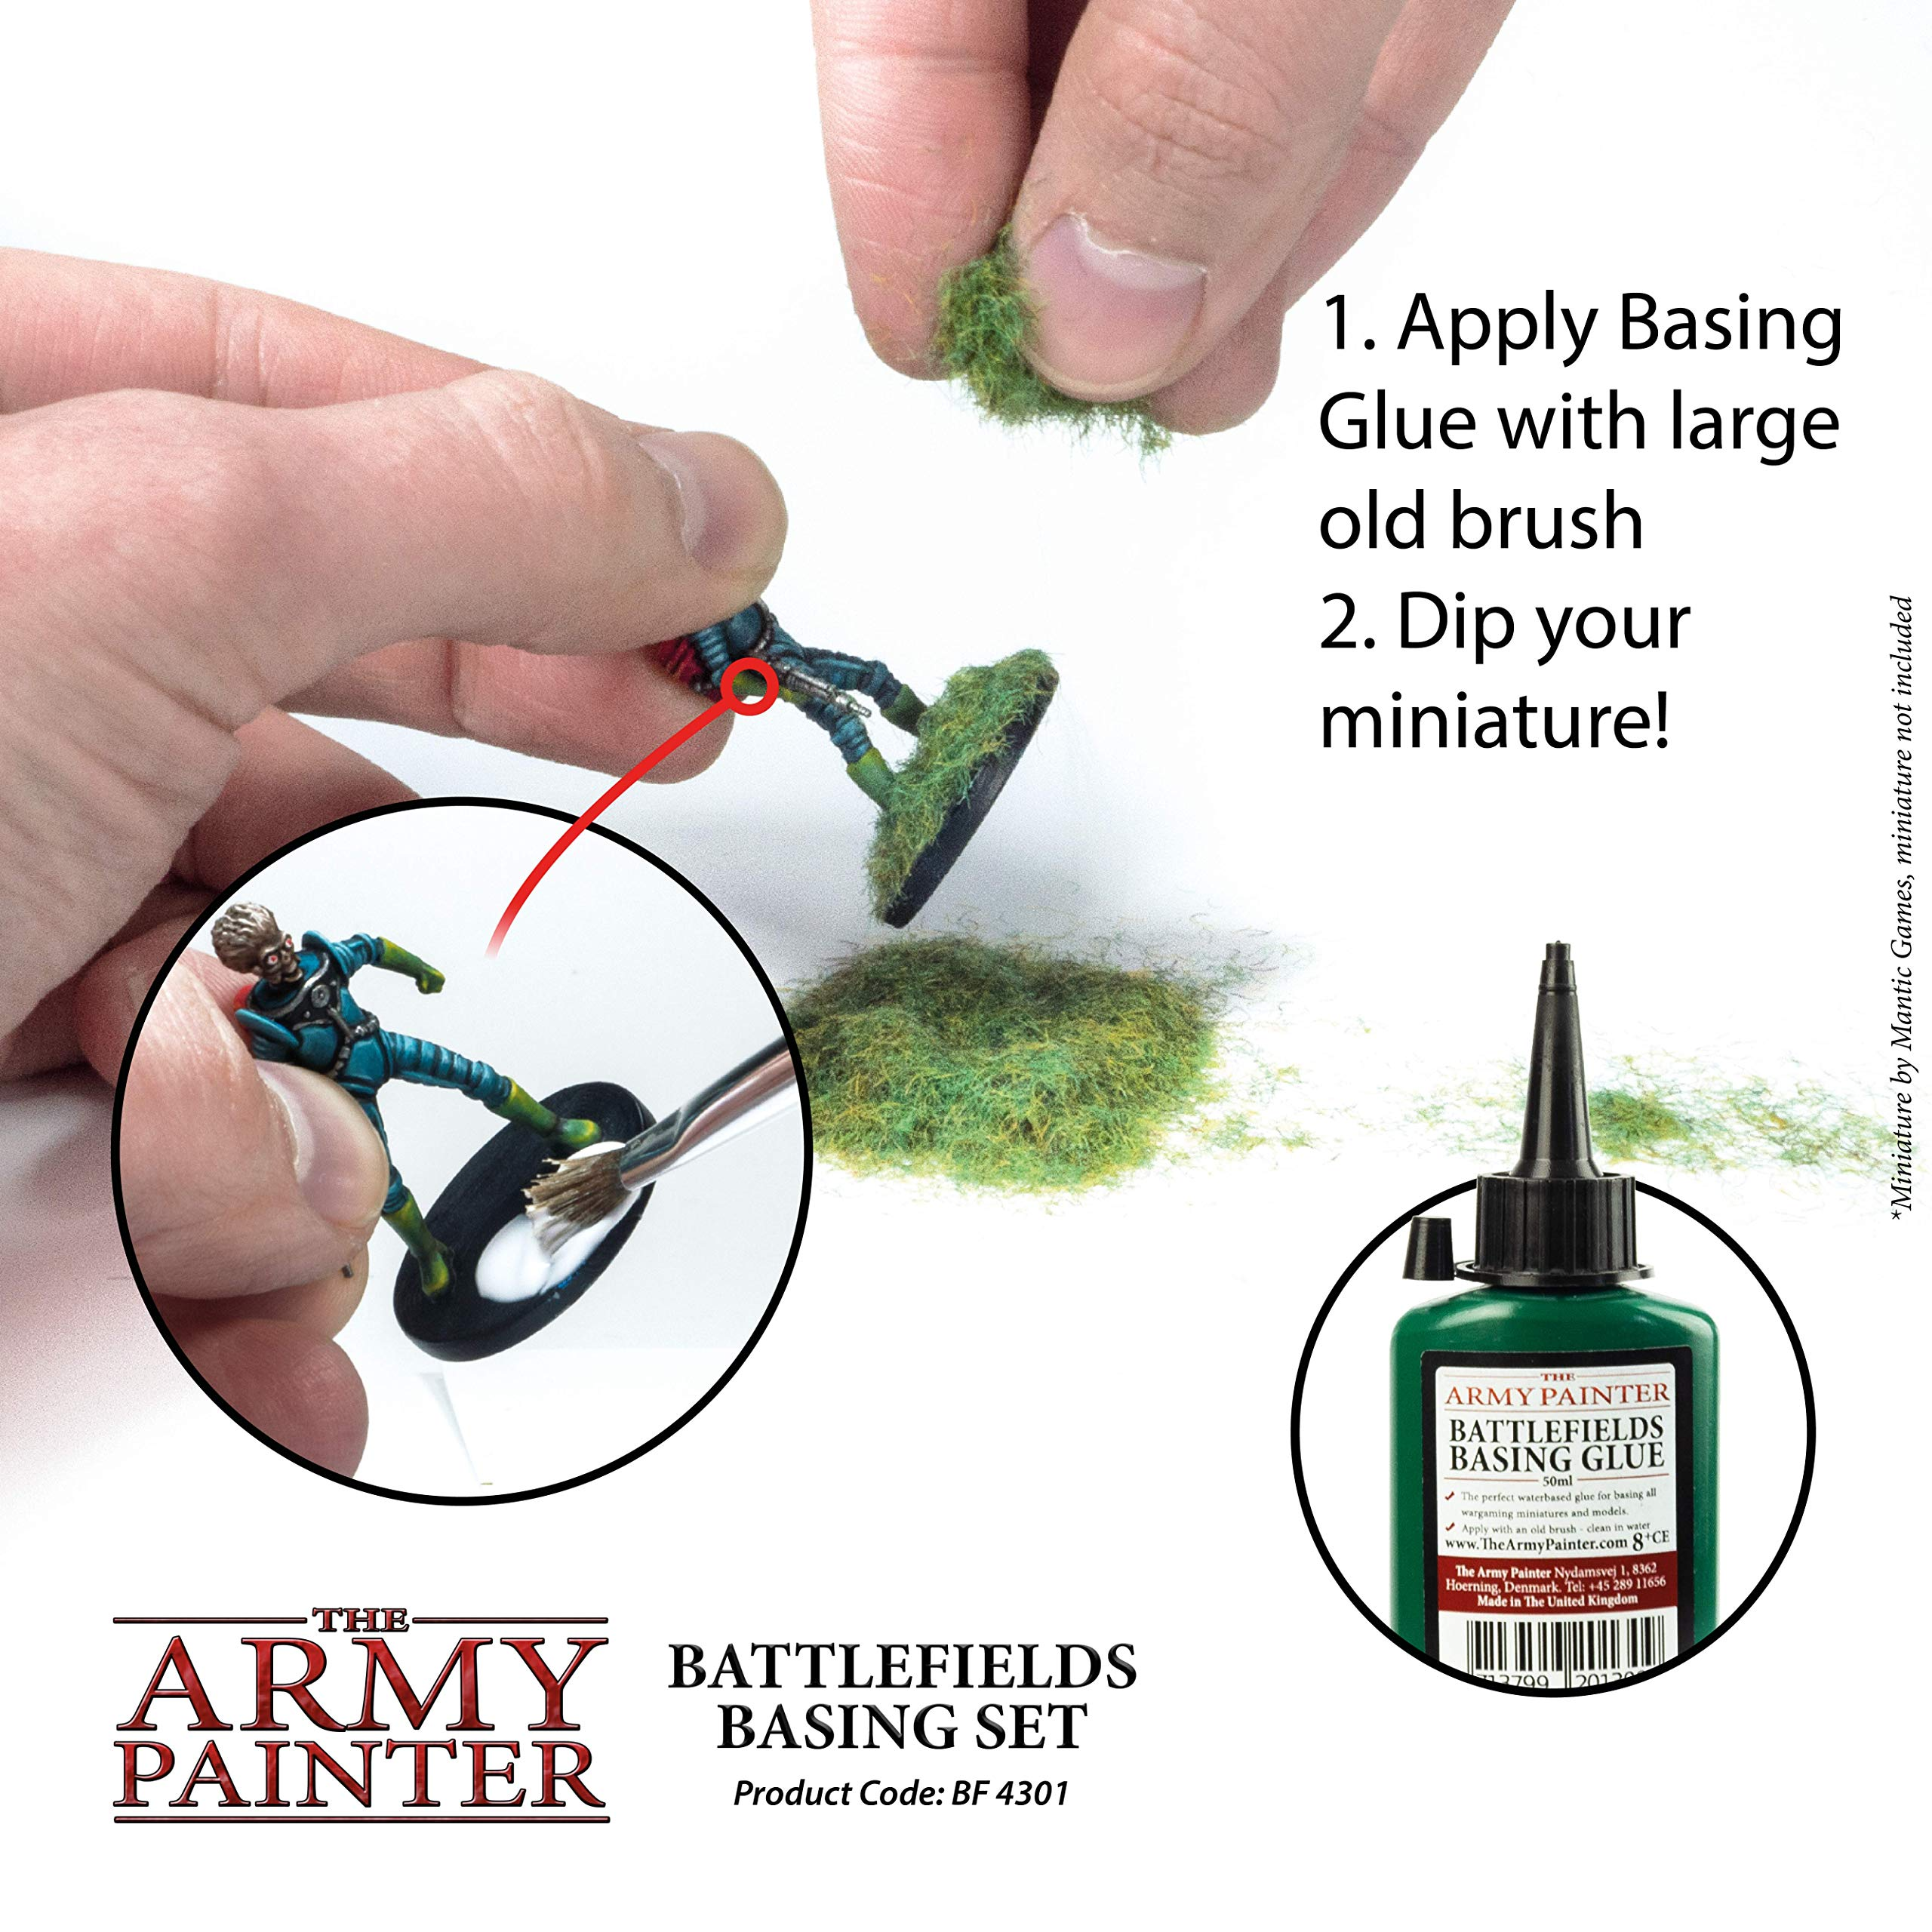 The Army Painter Battlefields Basing Set - Wargamers Terrain Model Kit for Miniature Bases and Dioramas with Landscape Rocks, Scenic Sand, Static Grass, Grass Tufts and Free Basing Glue by The Army Painter (Image #5)